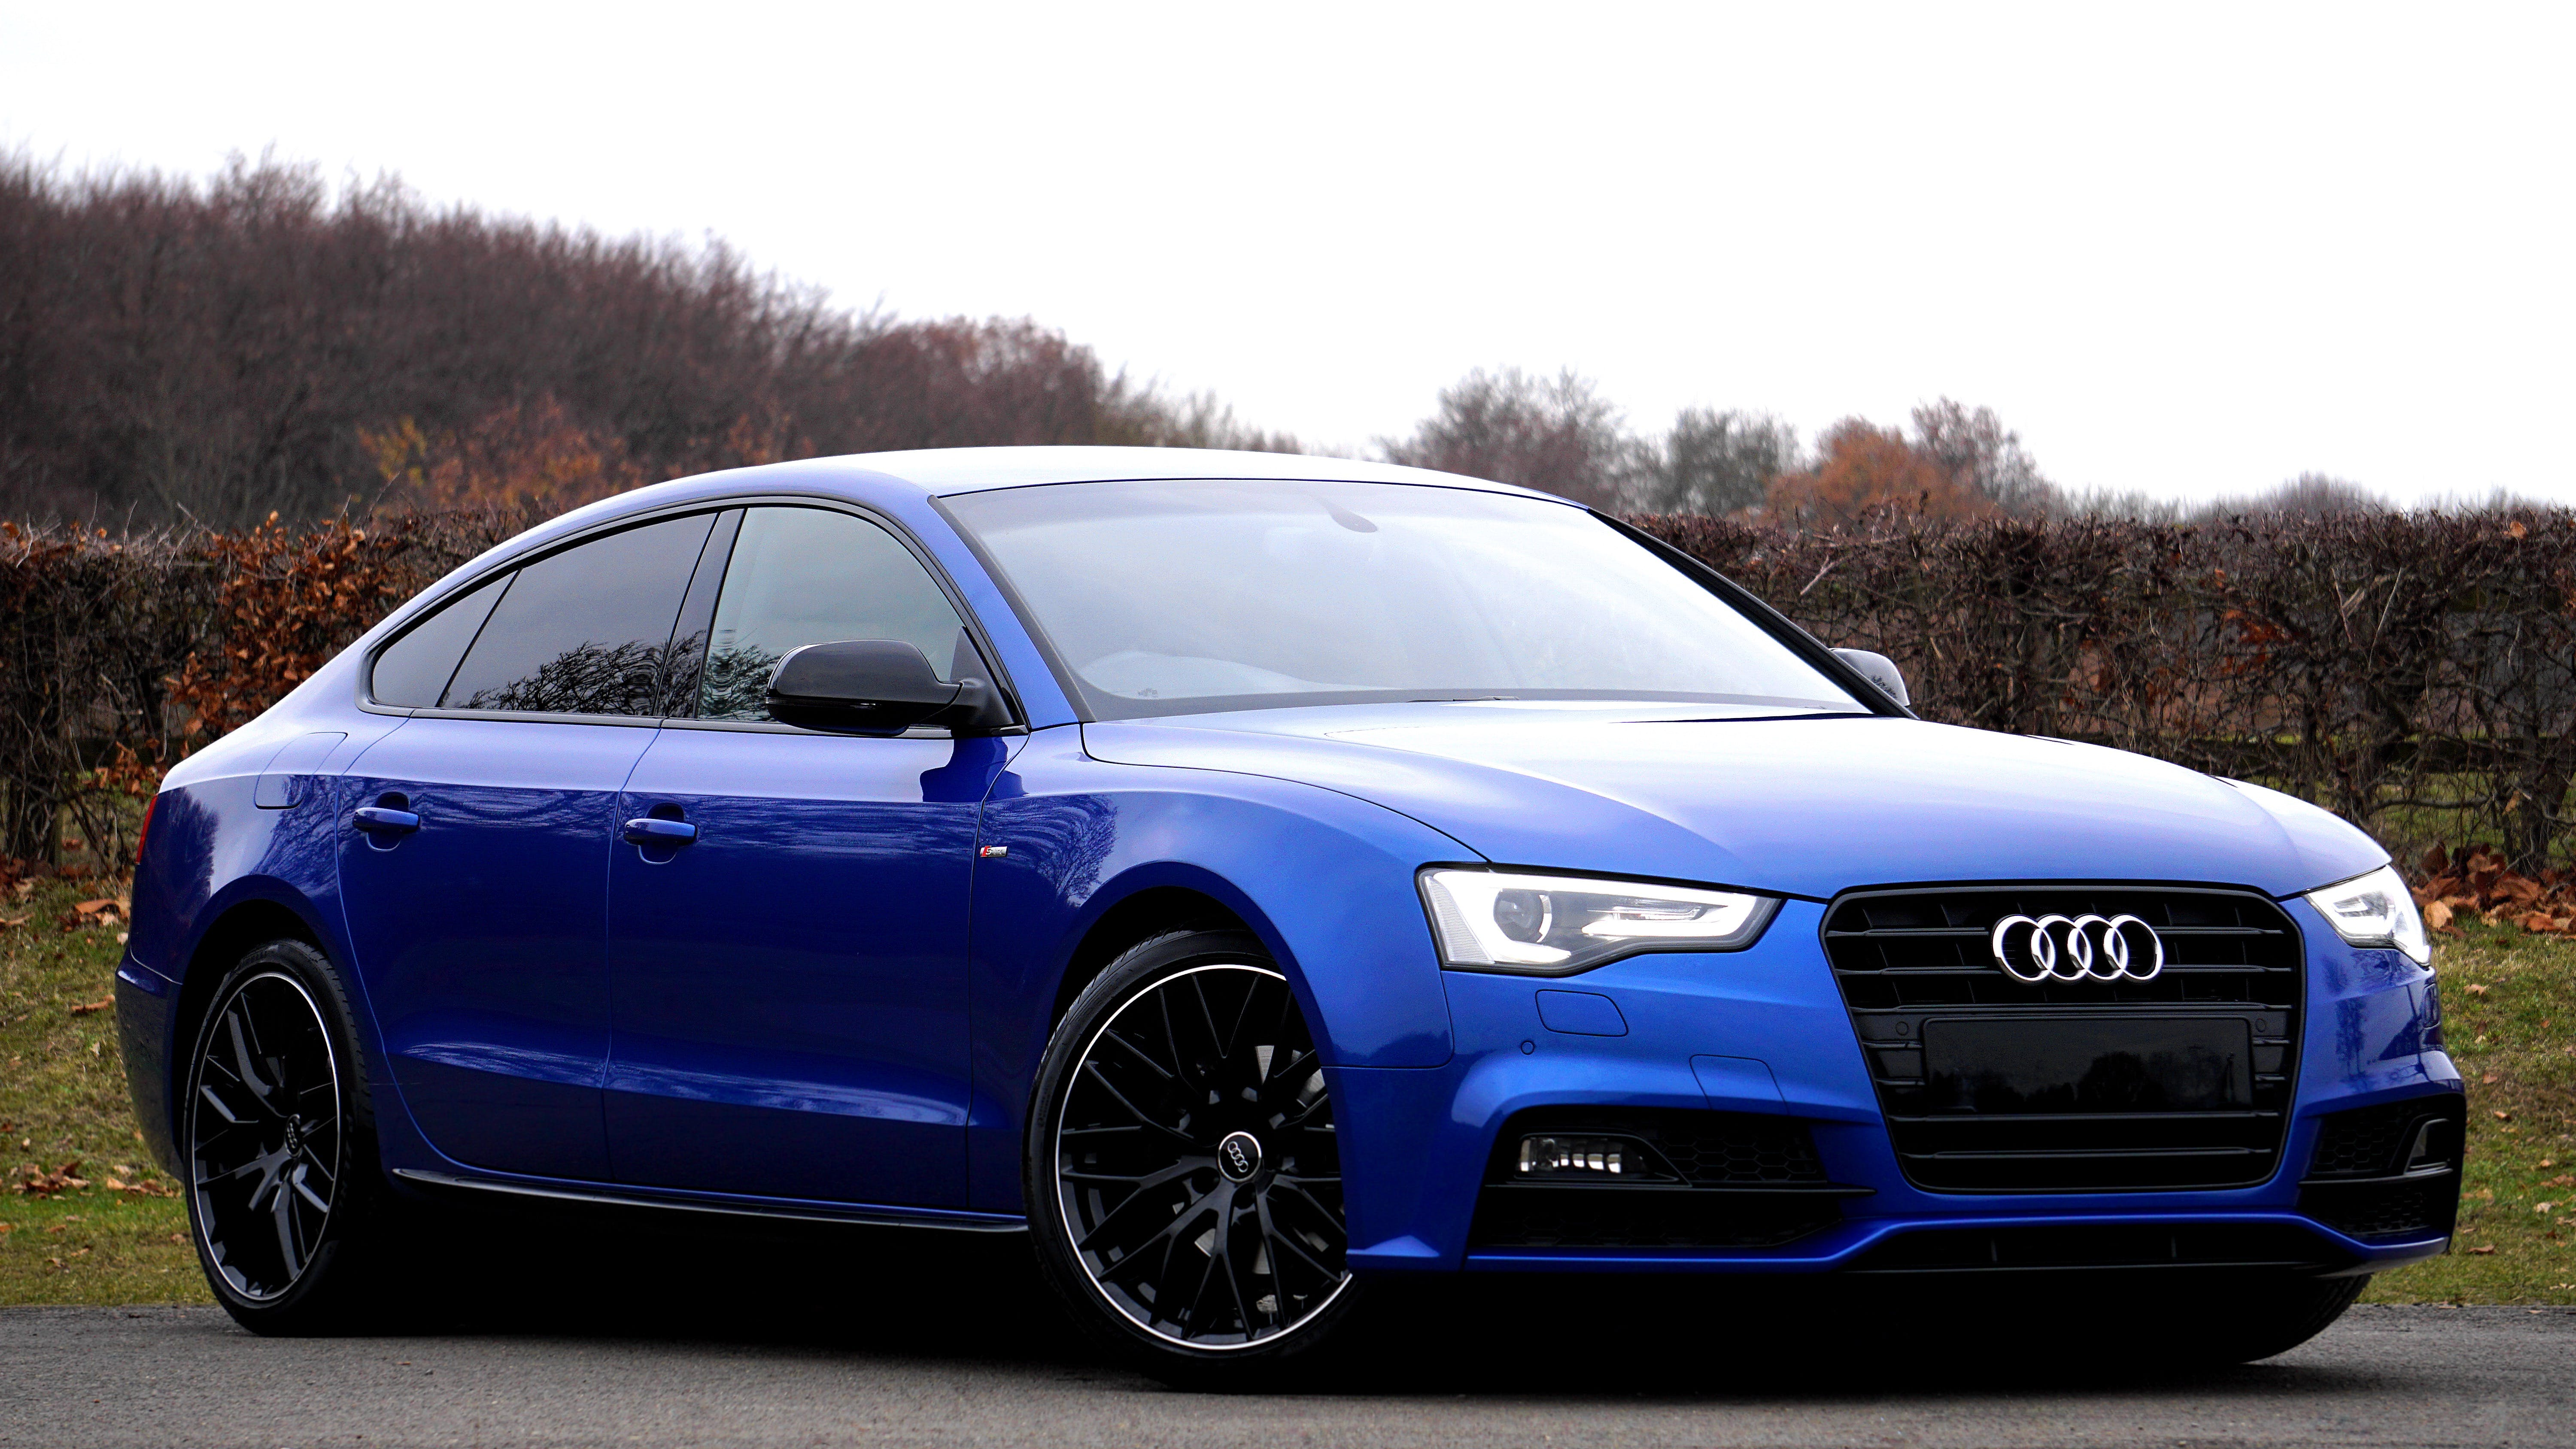 Blue Audi Sedan Parked Near Forest